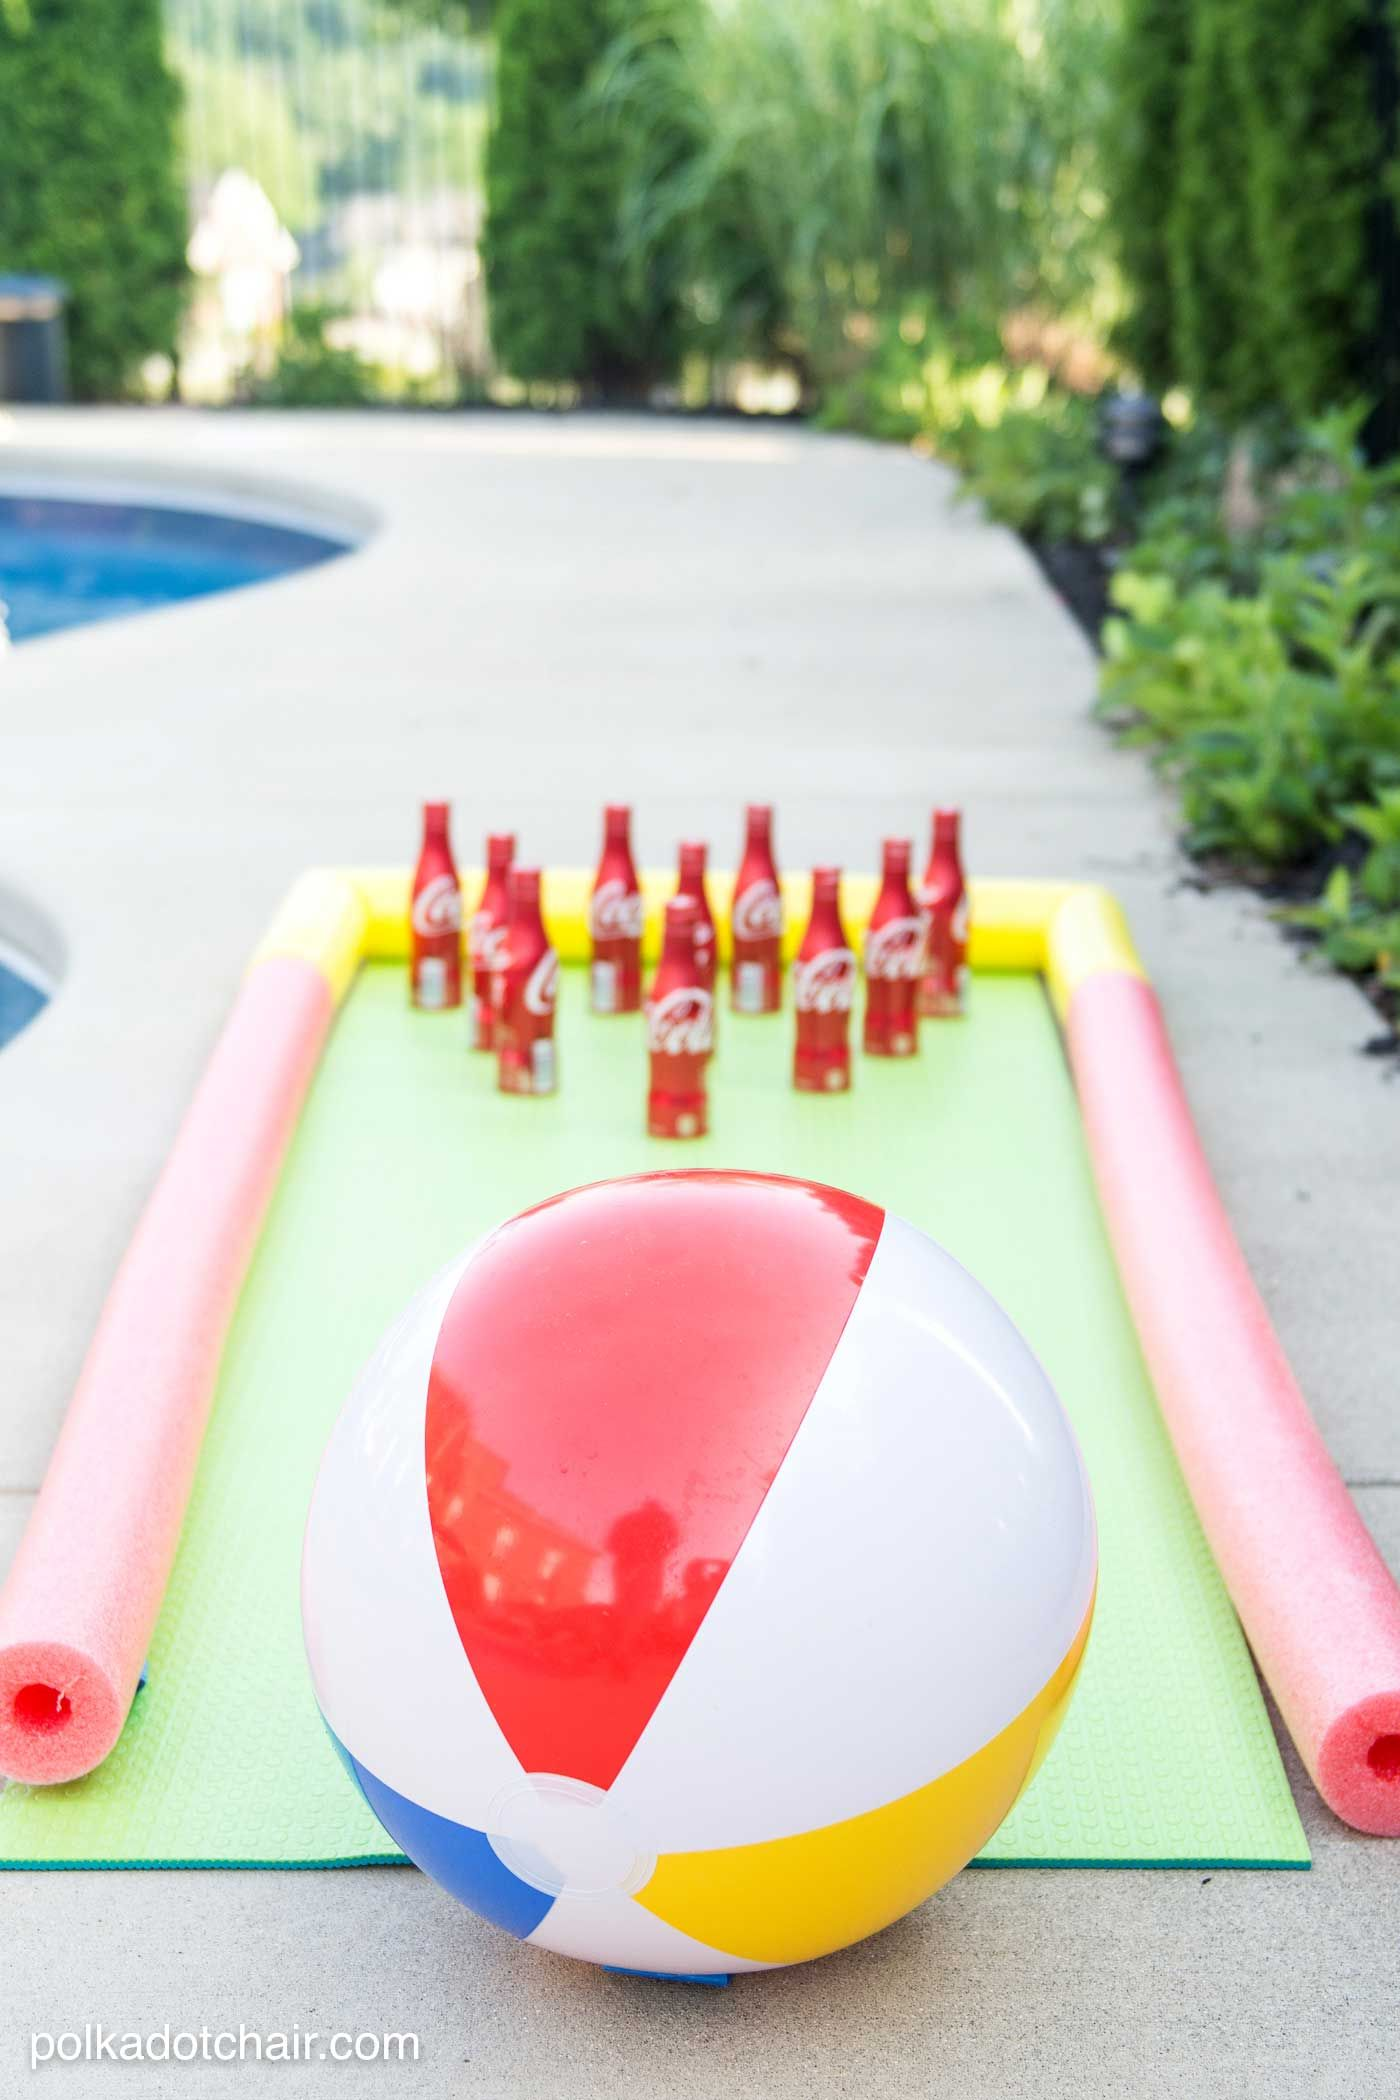 diy coke bottle outdoor bowling game bottle pools and yoga